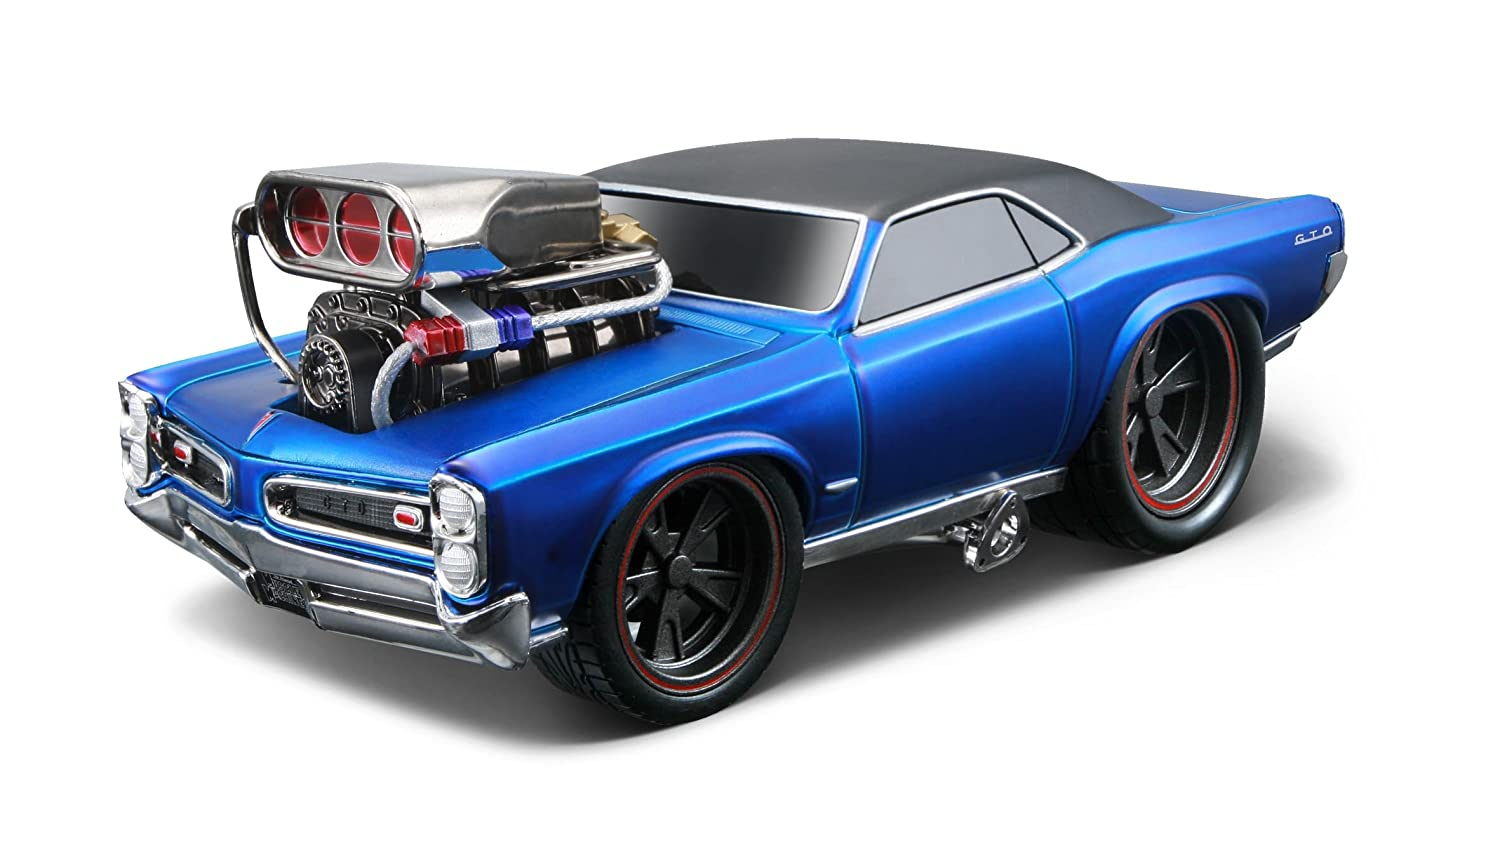 Amazon.com: MUSCLE MACHINES 1966 PONTIAC GTO: Toys & Games